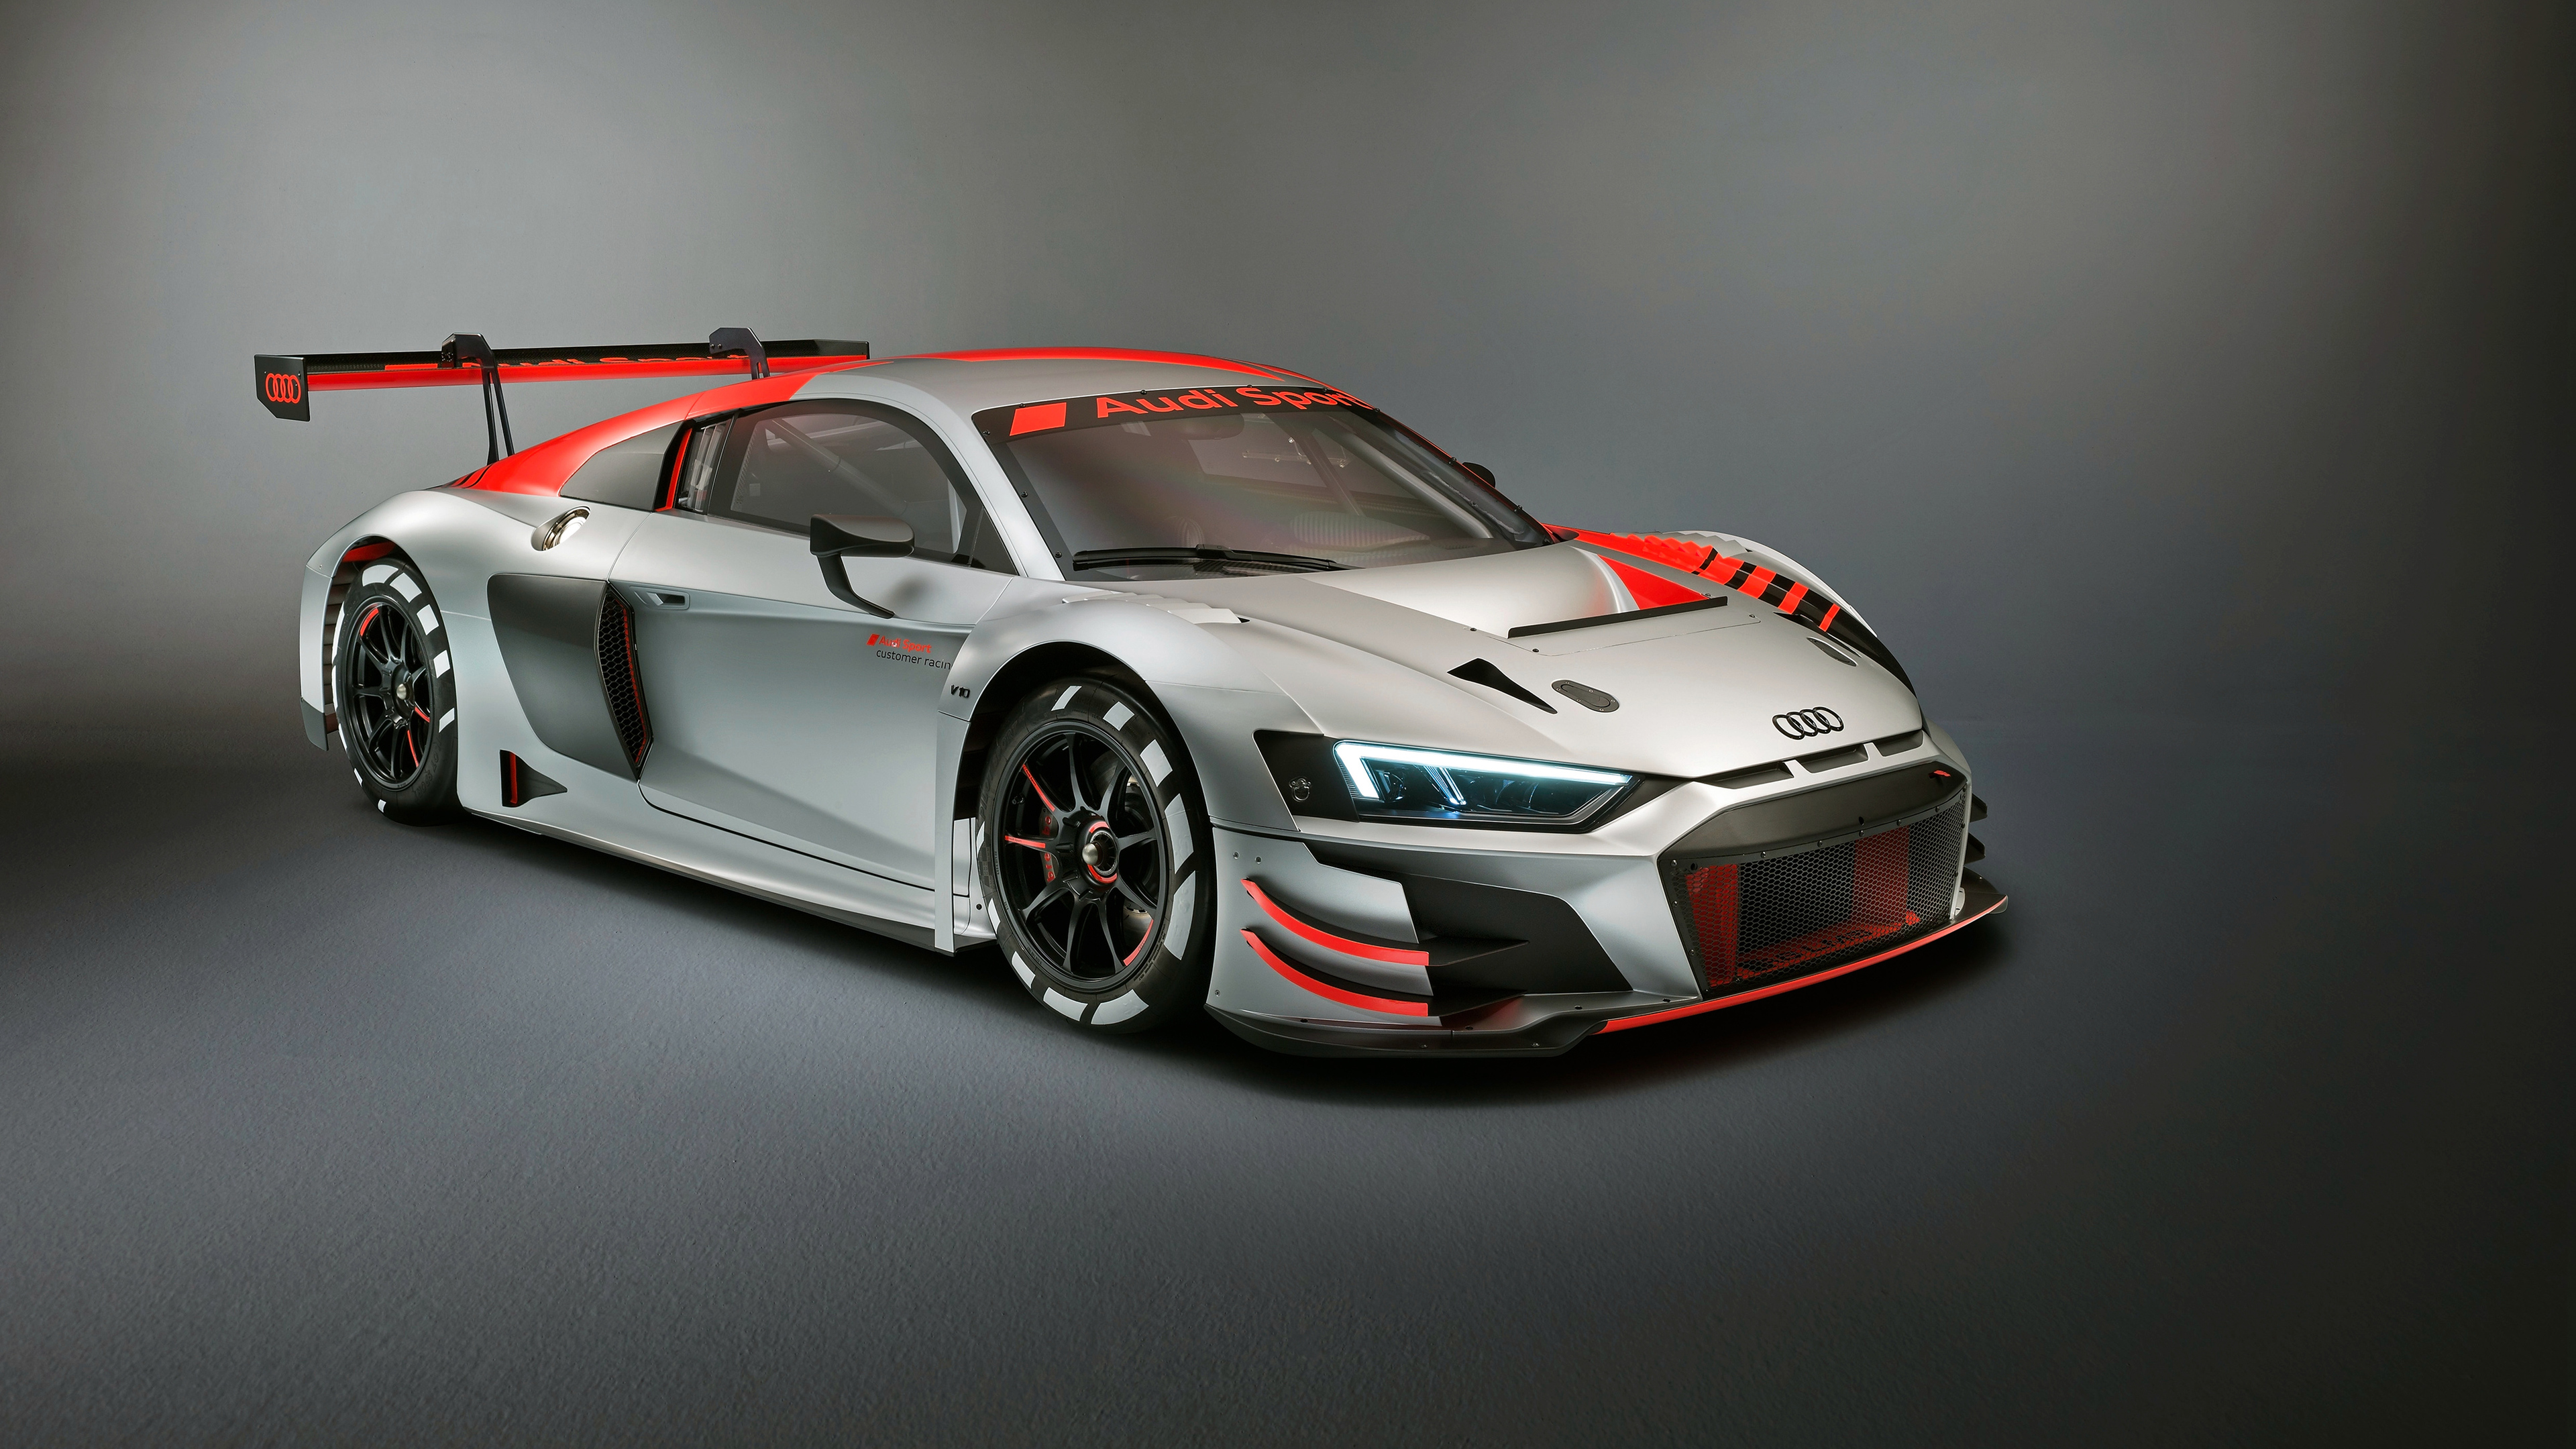 audi r8 lms 2019 front 1539792906 - Audi R8 LMS 2019 Front - hd-wallpapers, cars wallpapers, audi wallpapers, audi r8 wallpapers, audi r8 lms wallpapers, 4k-wallpapers, 2019 cars wallpapers